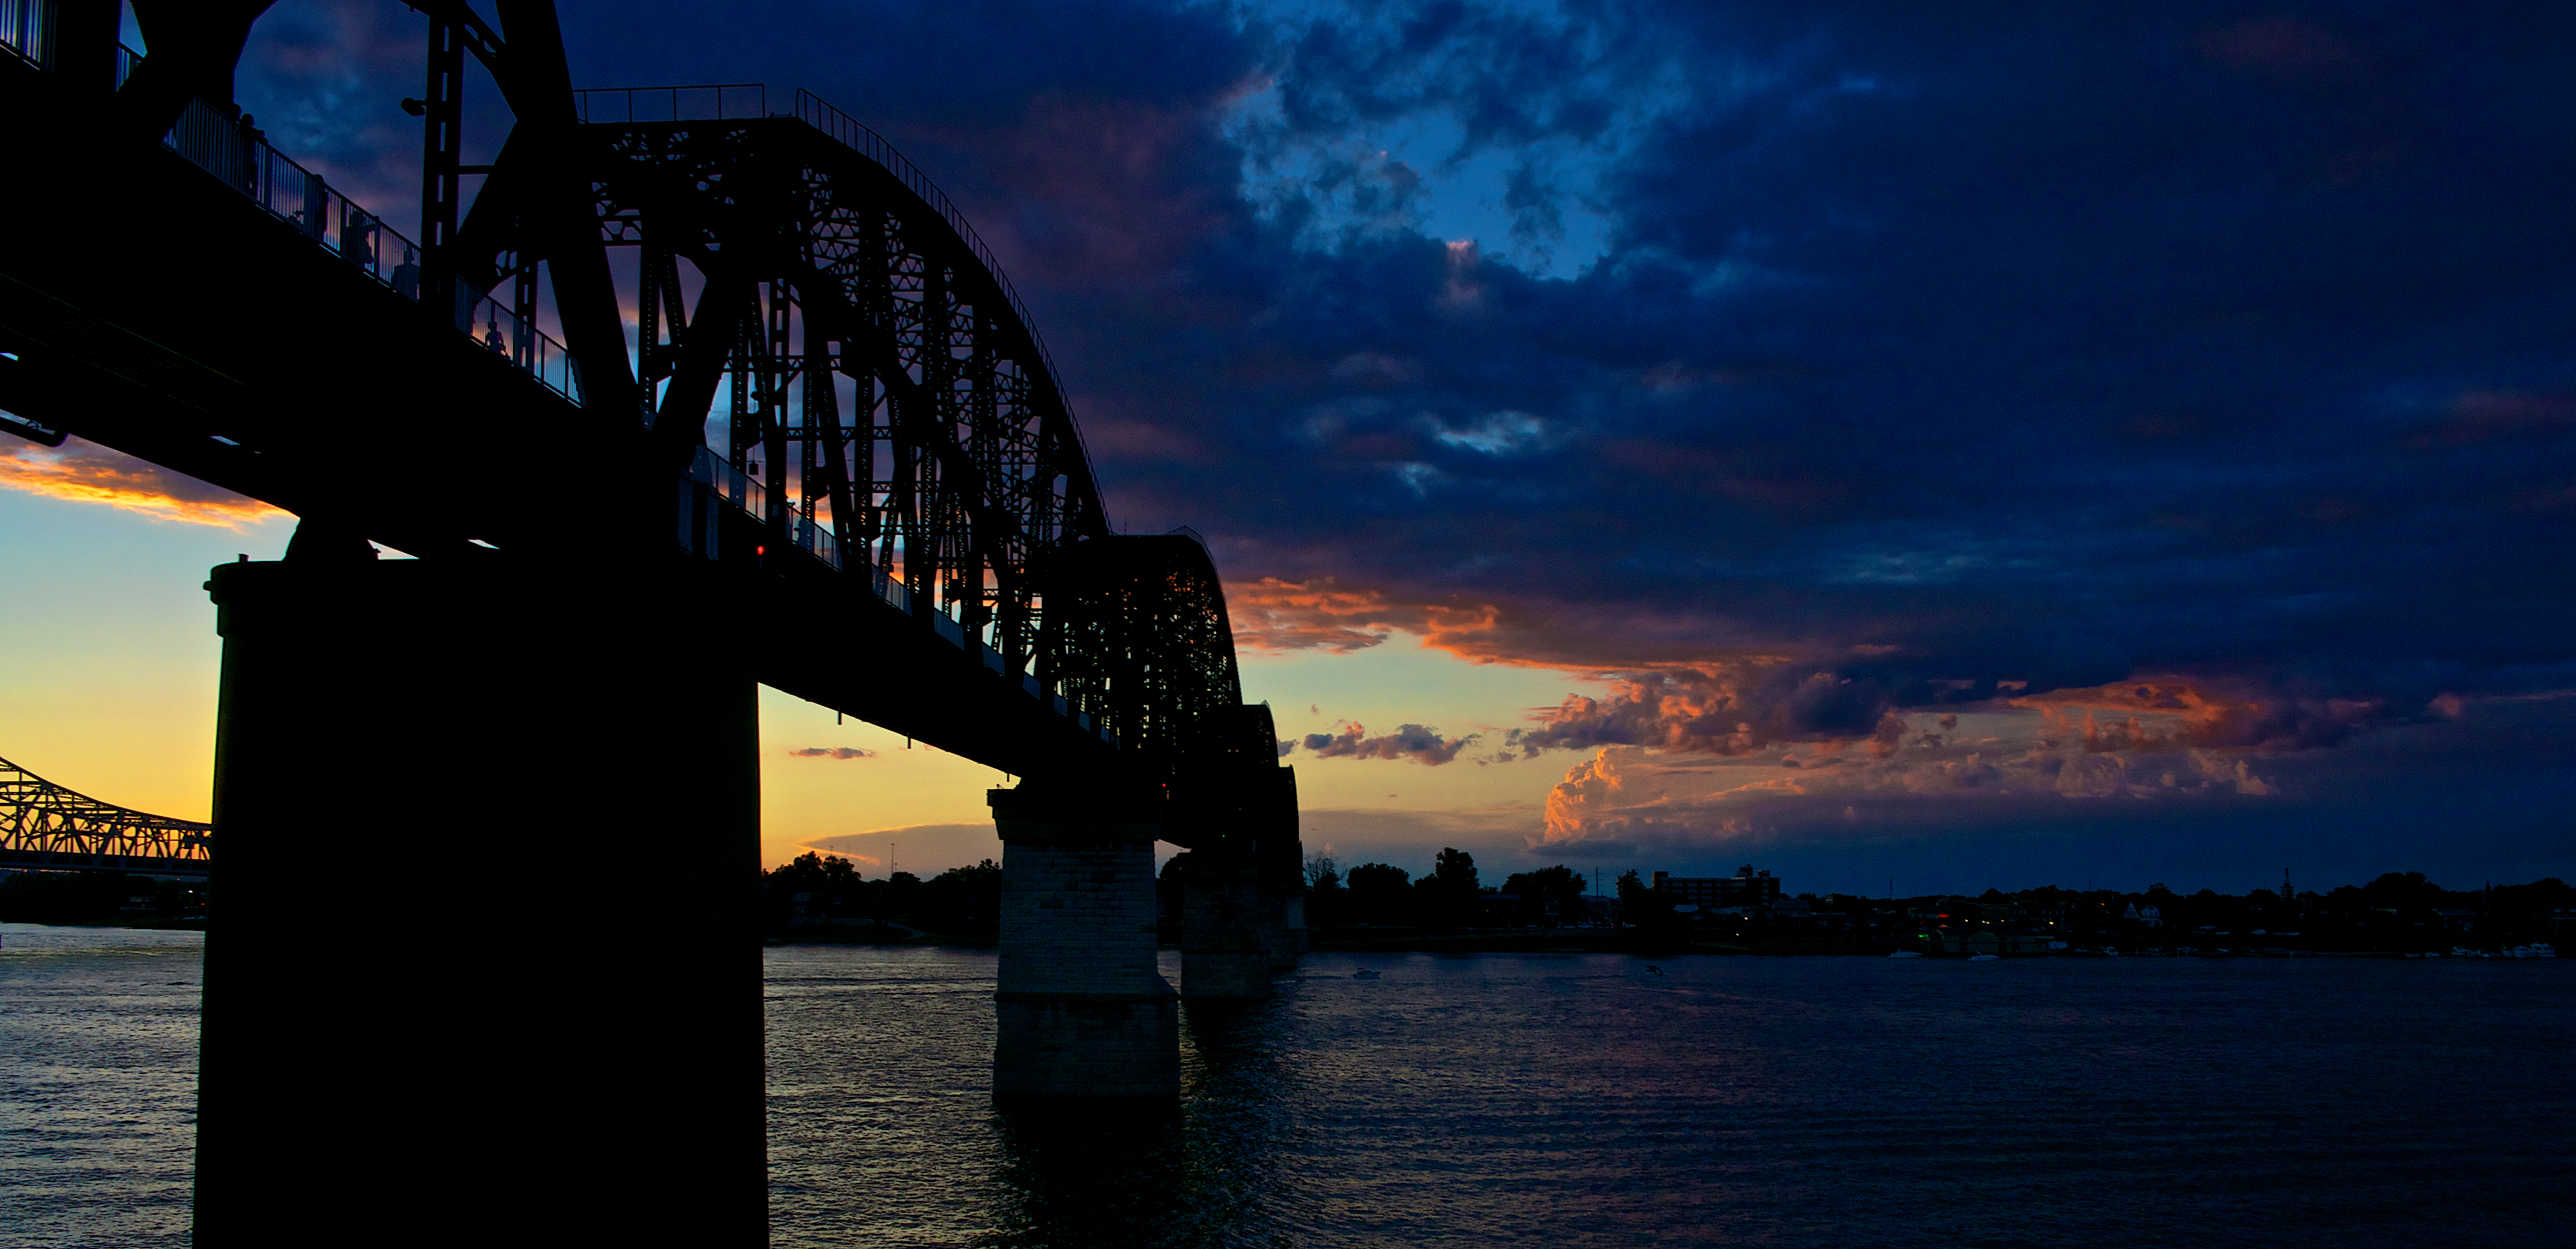 Louisville's Big Four Bridge after a day of thunderstorms and rain.